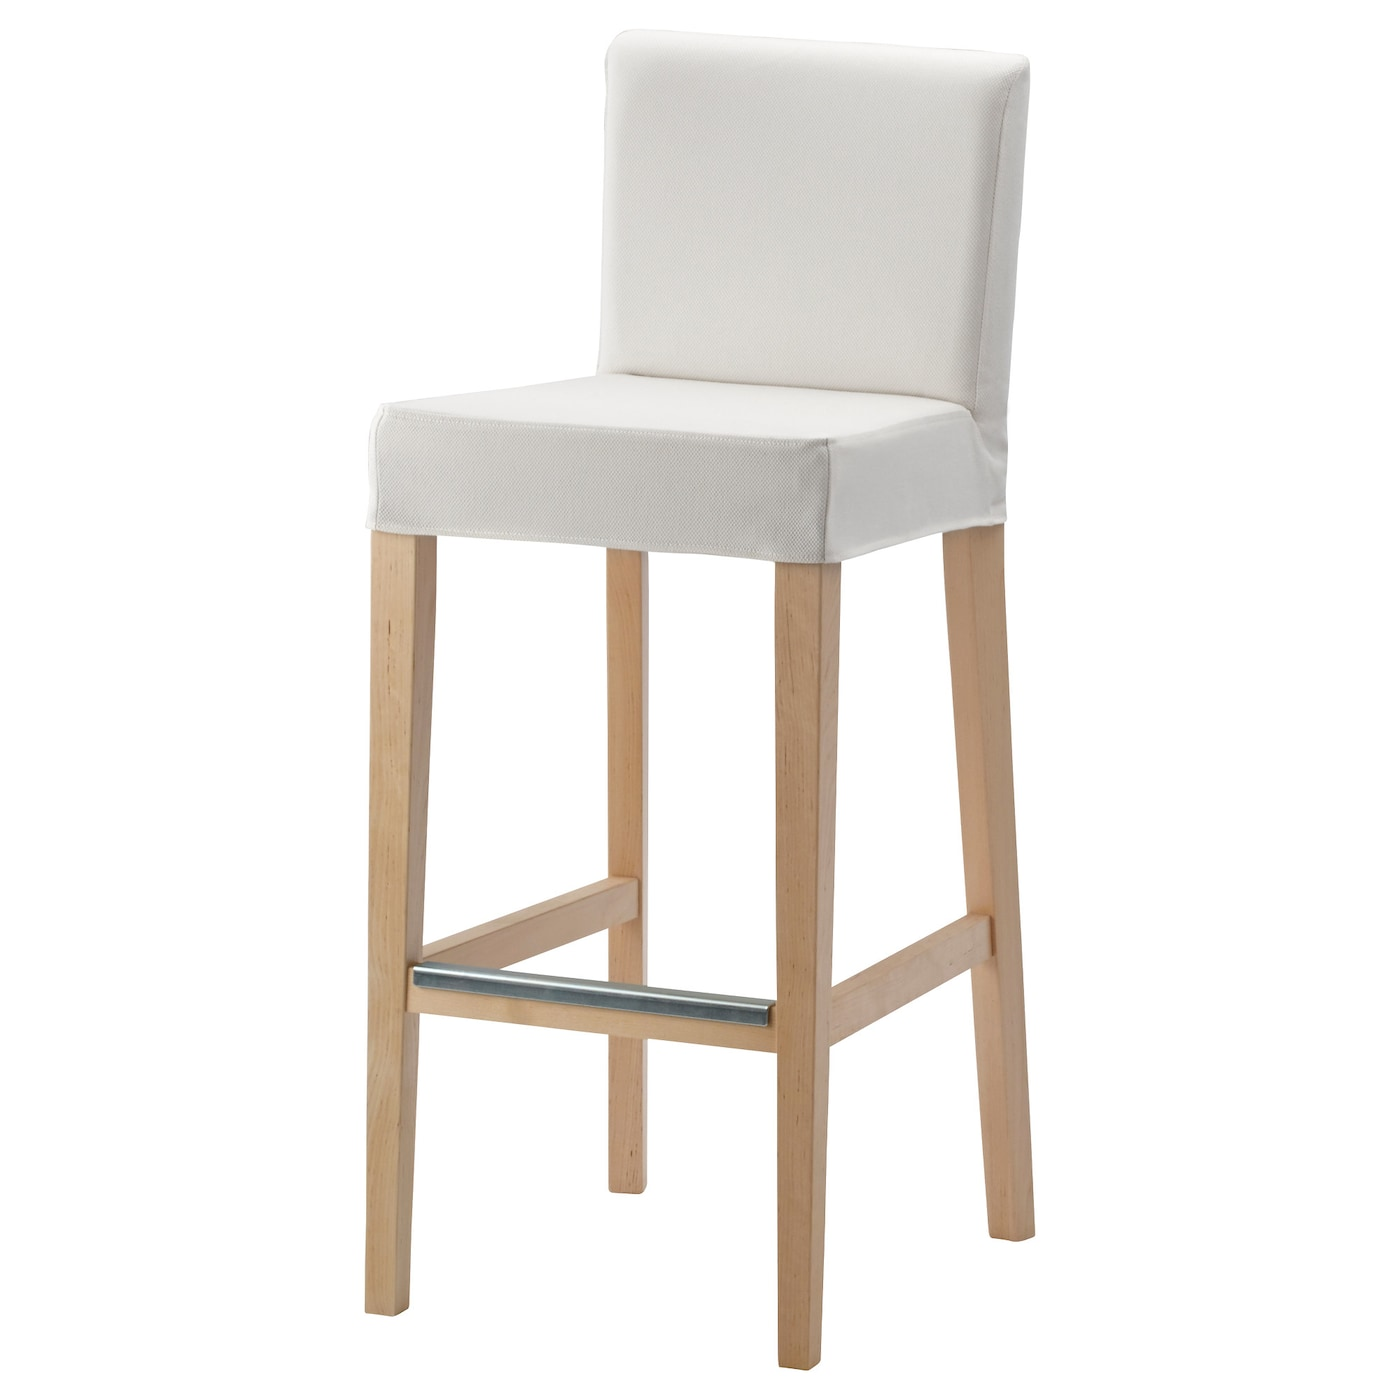 henriksdal bar stool with backrest birch gr sbo white 74 cm ikea. Black Bedroom Furniture Sets. Home Design Ideas